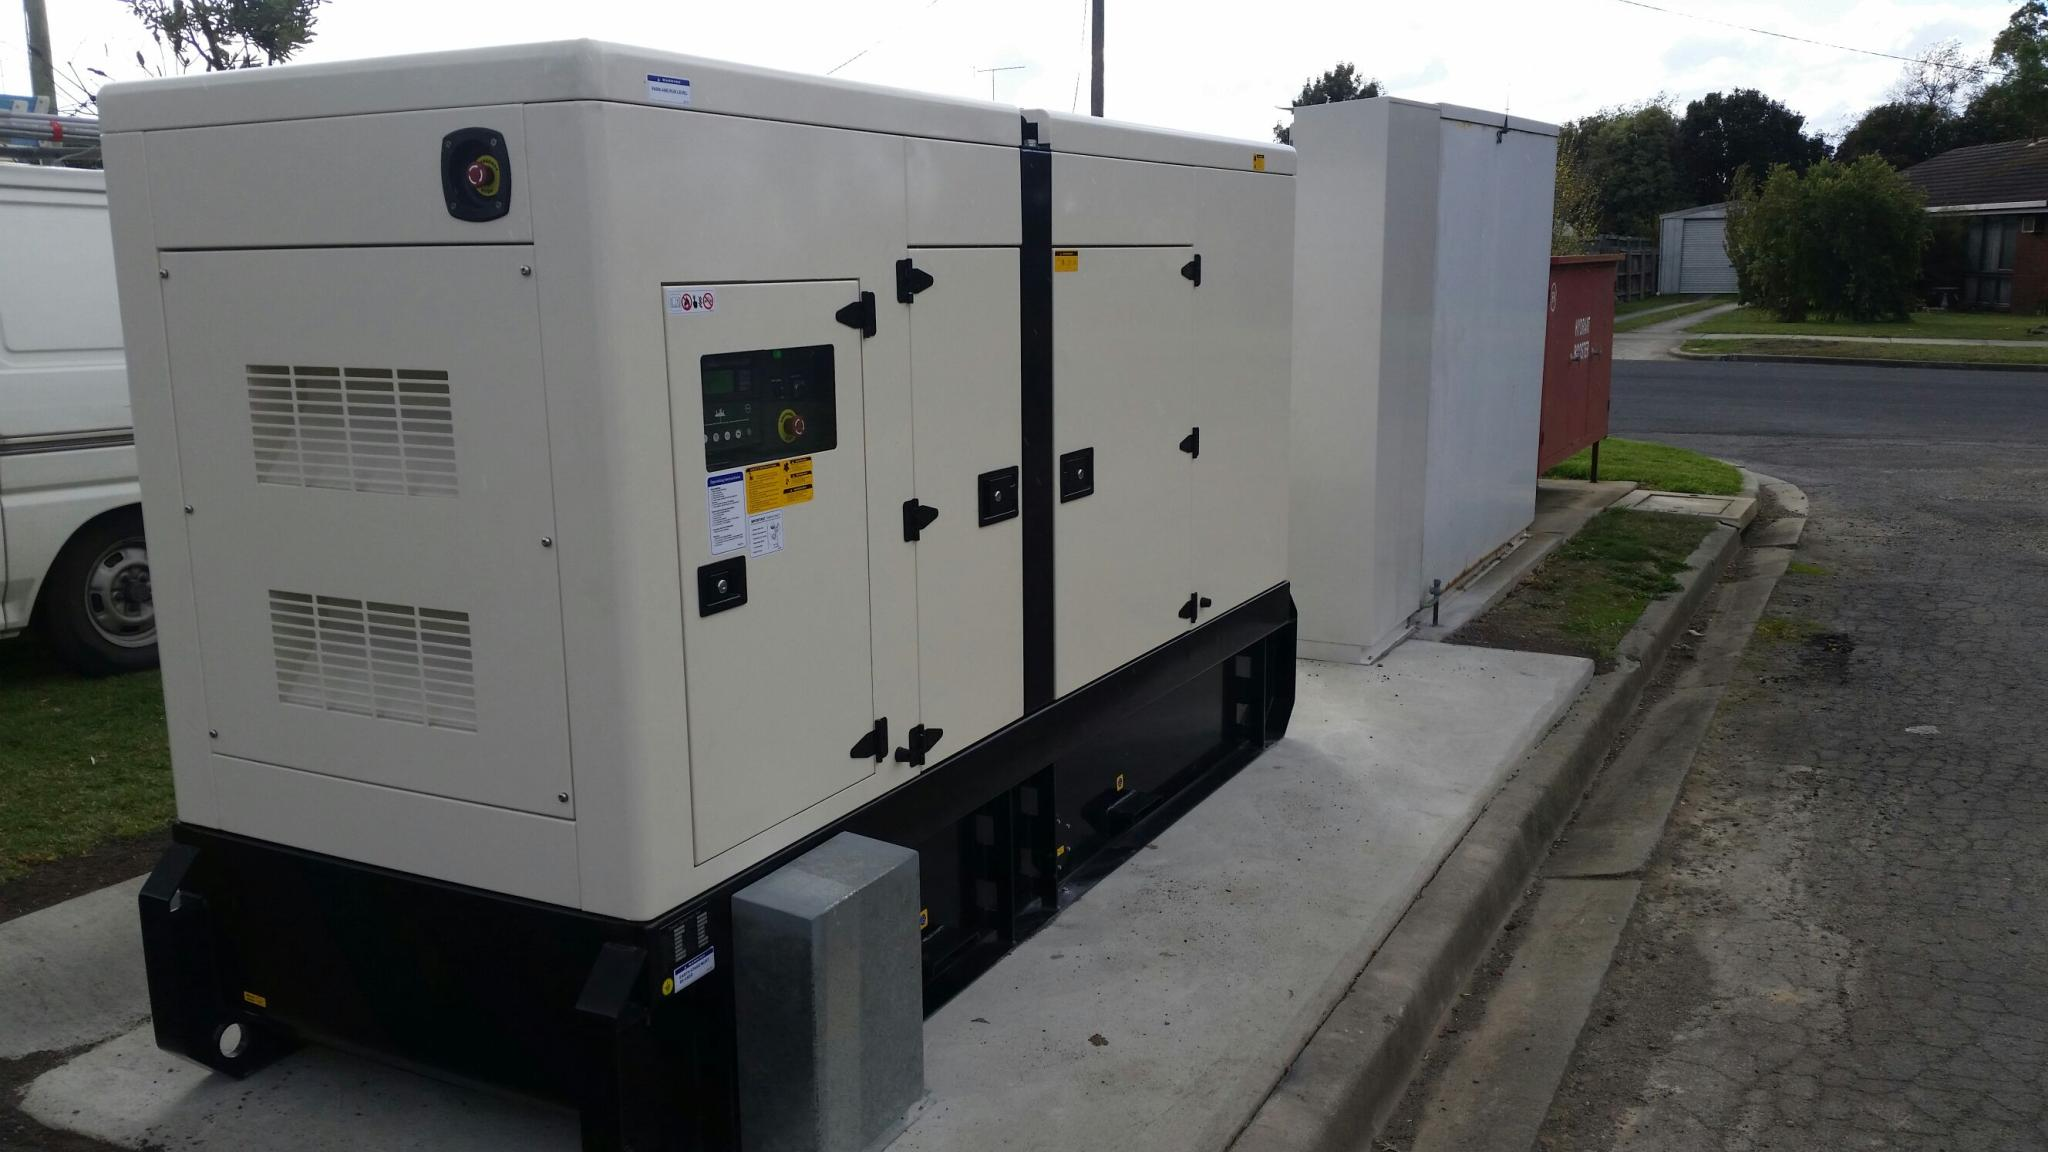 Supply & Install at Traralgon 150kVA standby generator